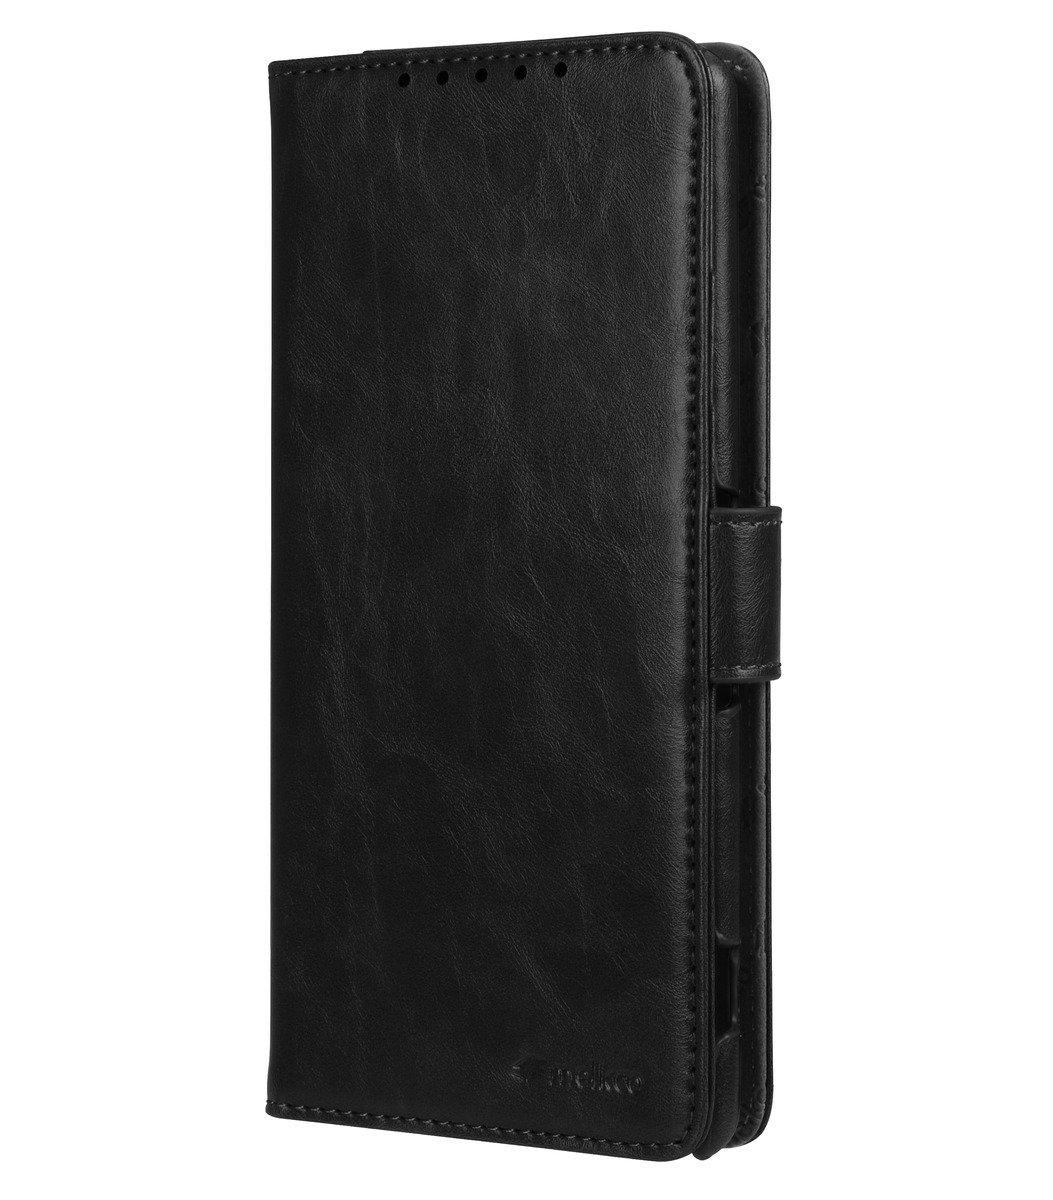 Sony Xperia C5 Ultra Wallet Book Type 人造皮手機套 - 黑色